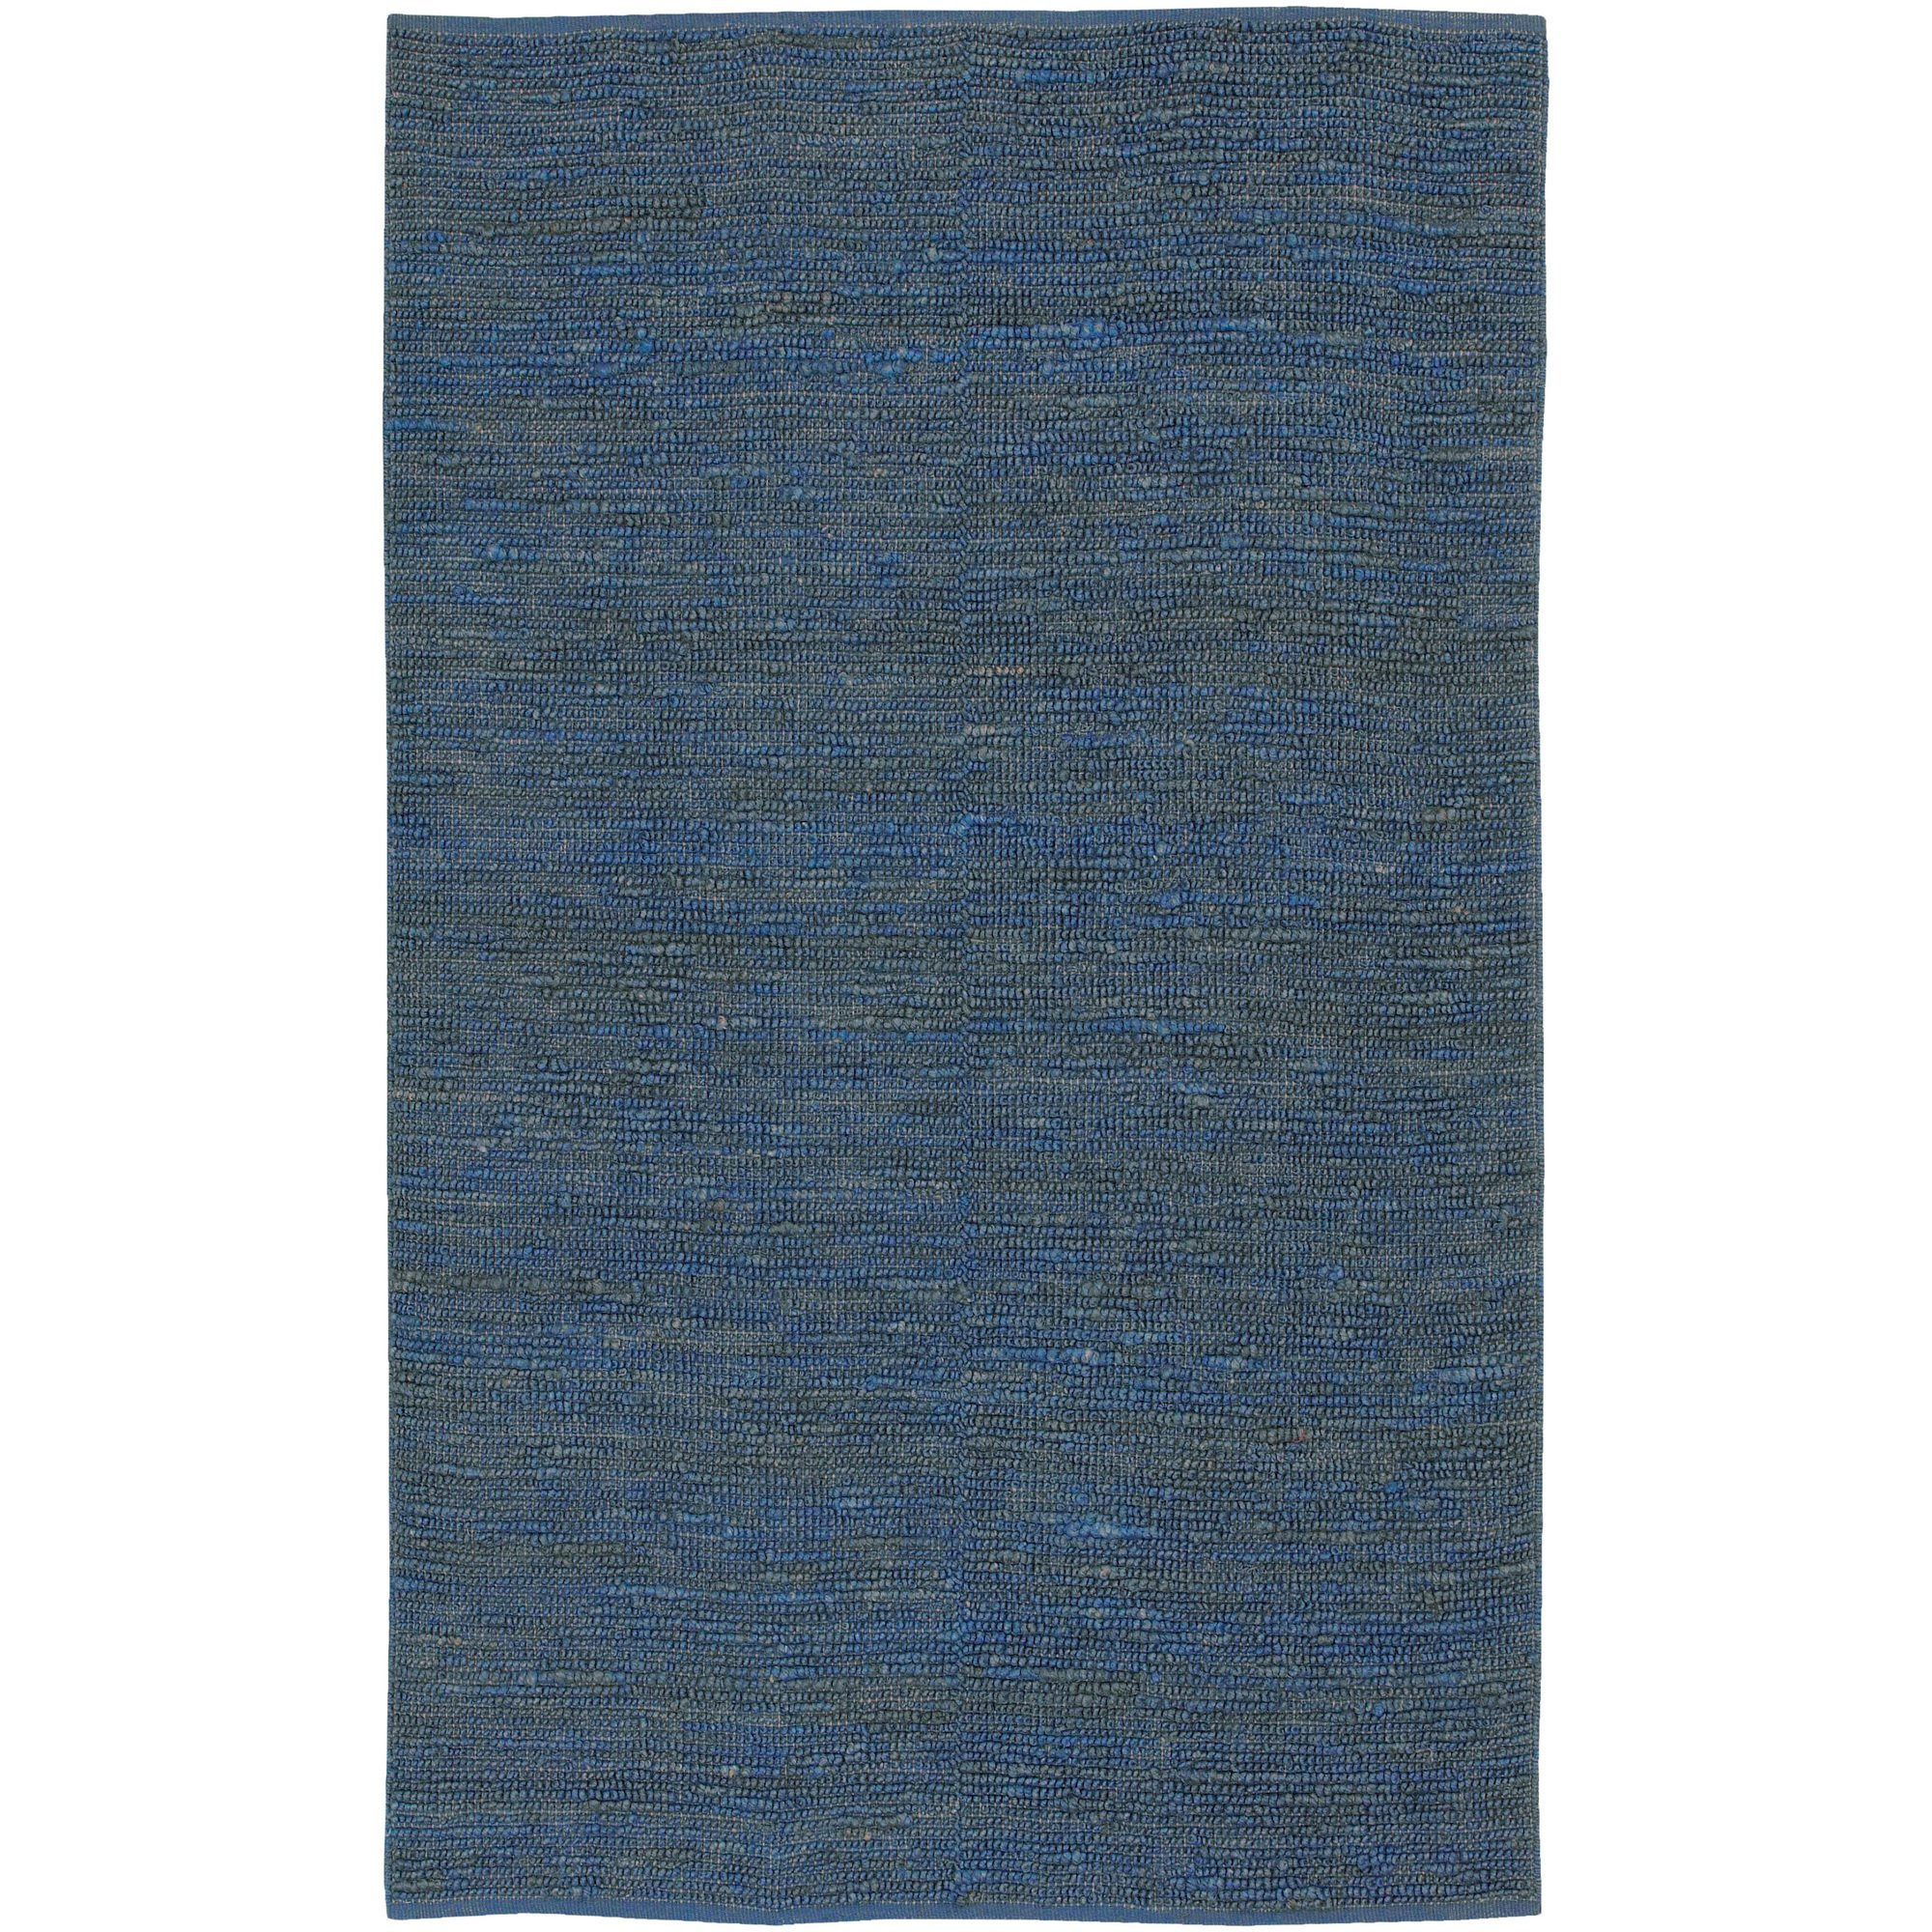 Surya Continental COT-1935 Natural Fiber Hand Woven 100% Natural Jute Midnight Blue 9' x 13' Area Rug